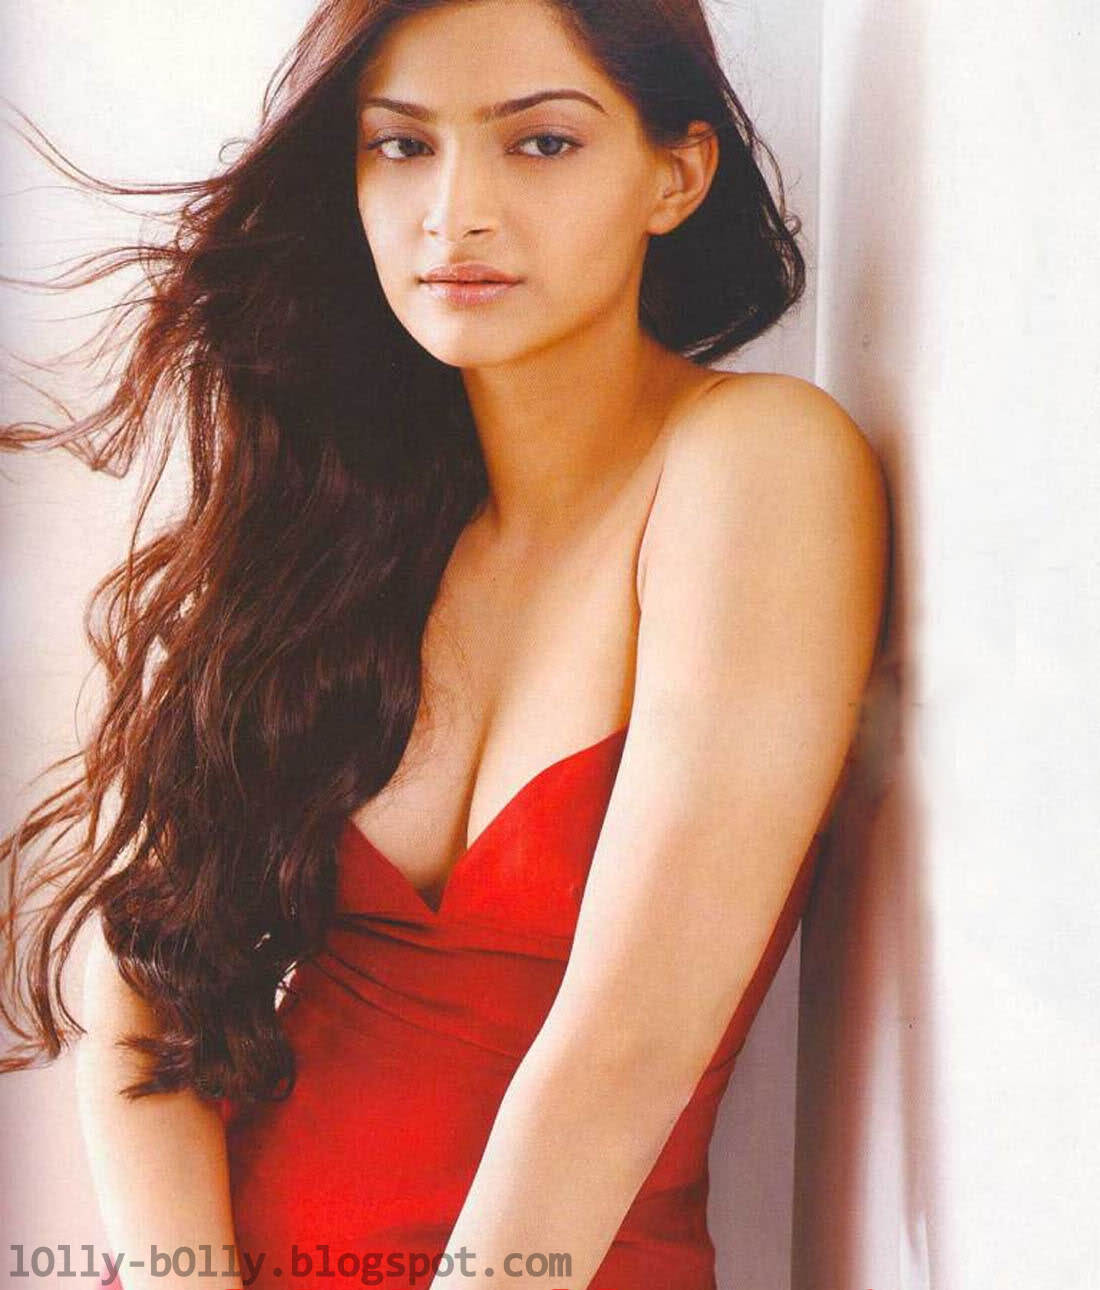 Naked Pictures Of Sonam Kapoor